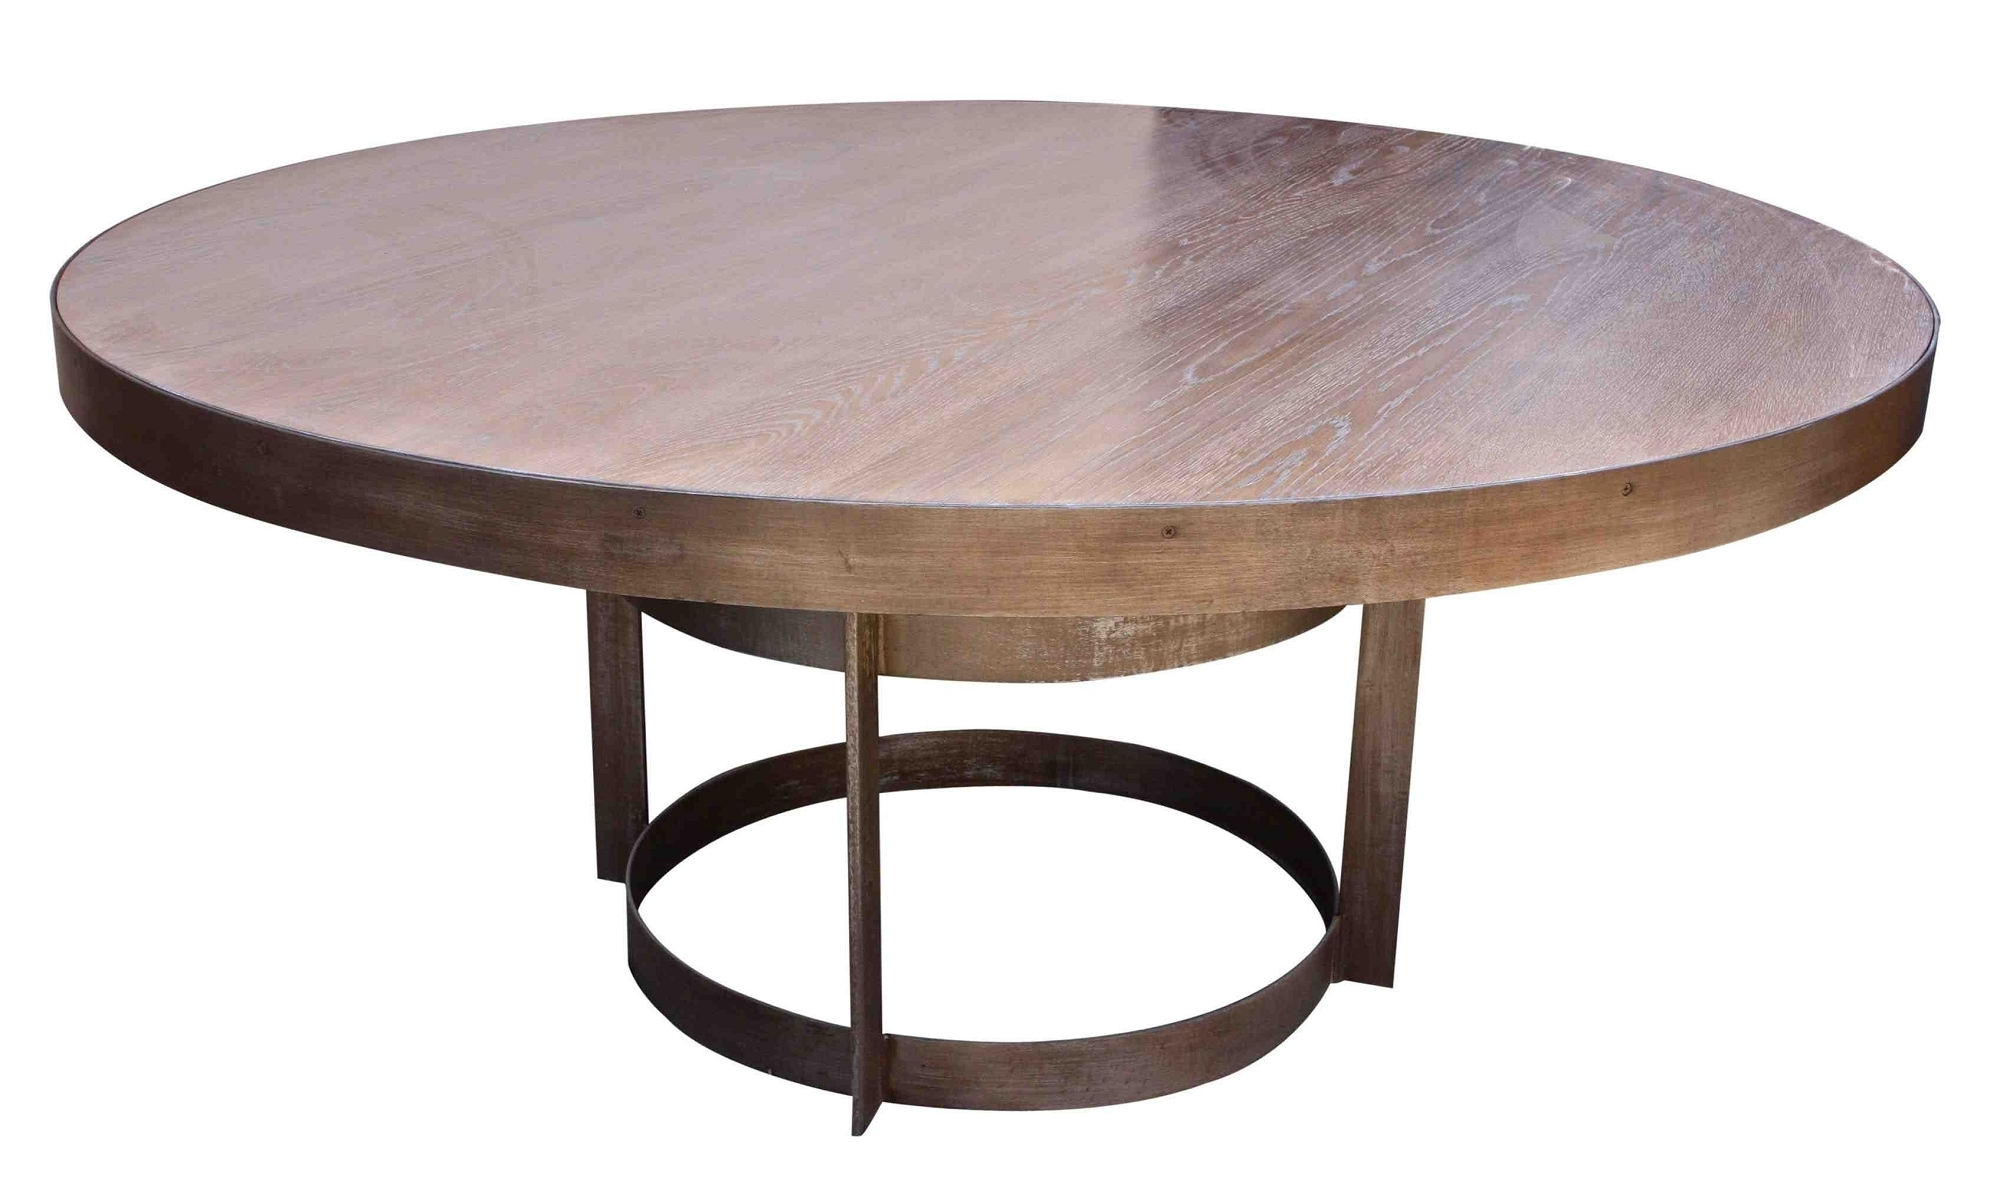 Dining Tables : Square Pedestal Table 54 Inch Round Dining, 54 Round Throughout Best And Newest Caira Black Round Dining Tables (Image 14 of 20)